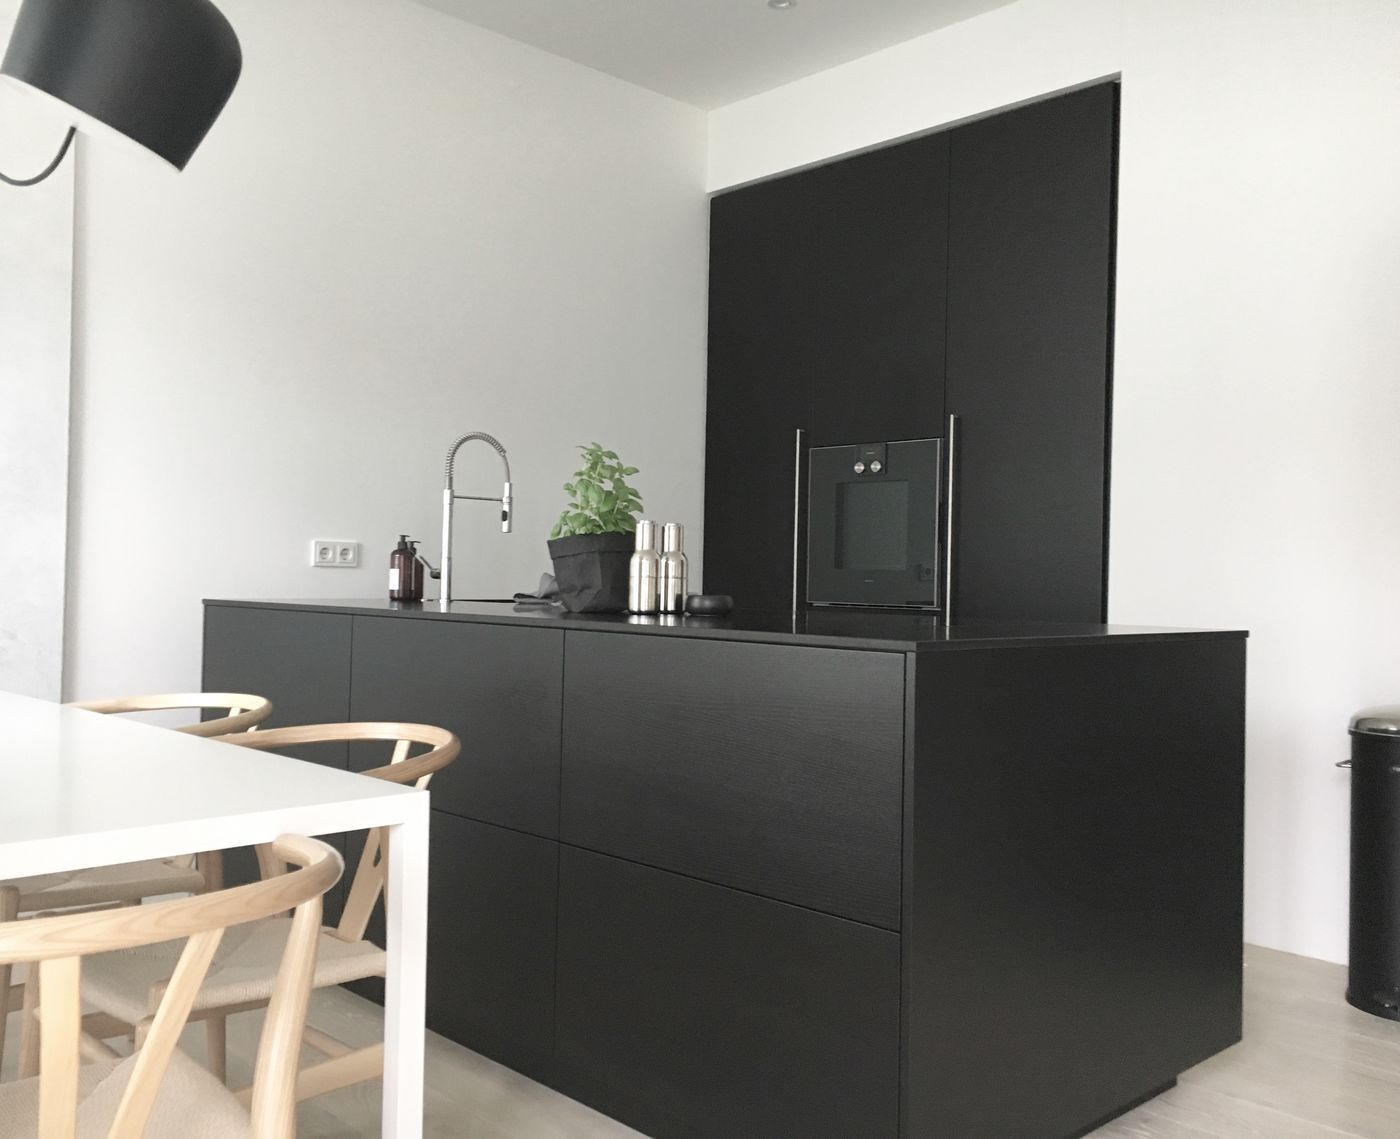 kleine k chen singlek chen einrichten. Black Bedroom Furniture Sets. Home Design Ideas